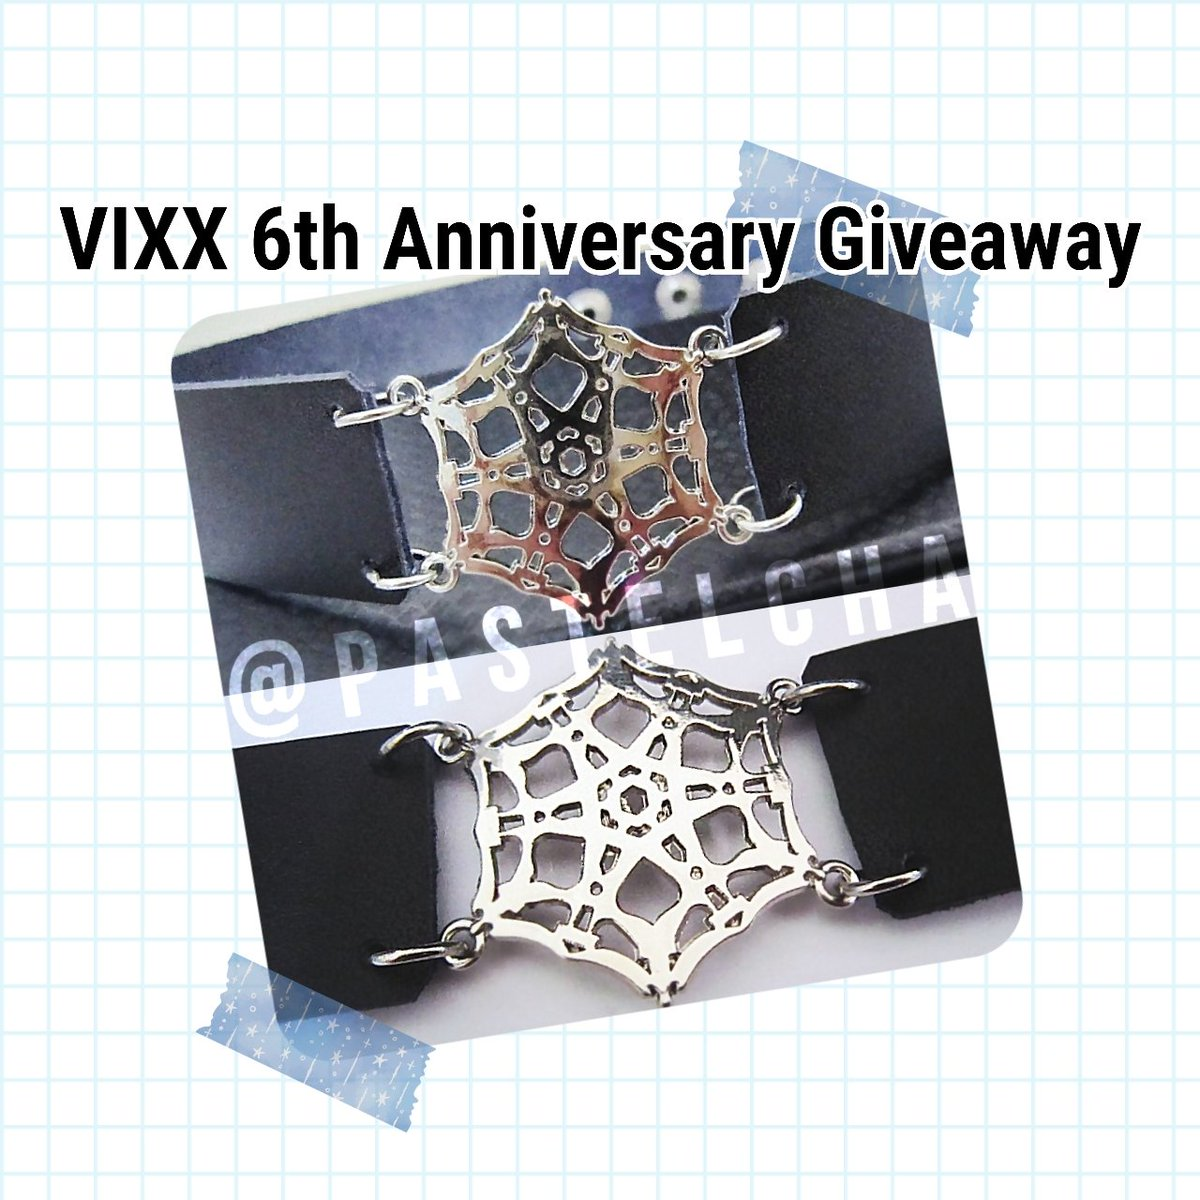 VIXX 6TH ANNIVERSARY GIVEAWAY    RT to enter   5 winners will be randomly selected   International, ships from U.S.   Must be following @pastelcha   Starlights only, please!        (I&#39;ll be checking bios)<br>http://pic.twitter.com/5Pa8oBiUF2